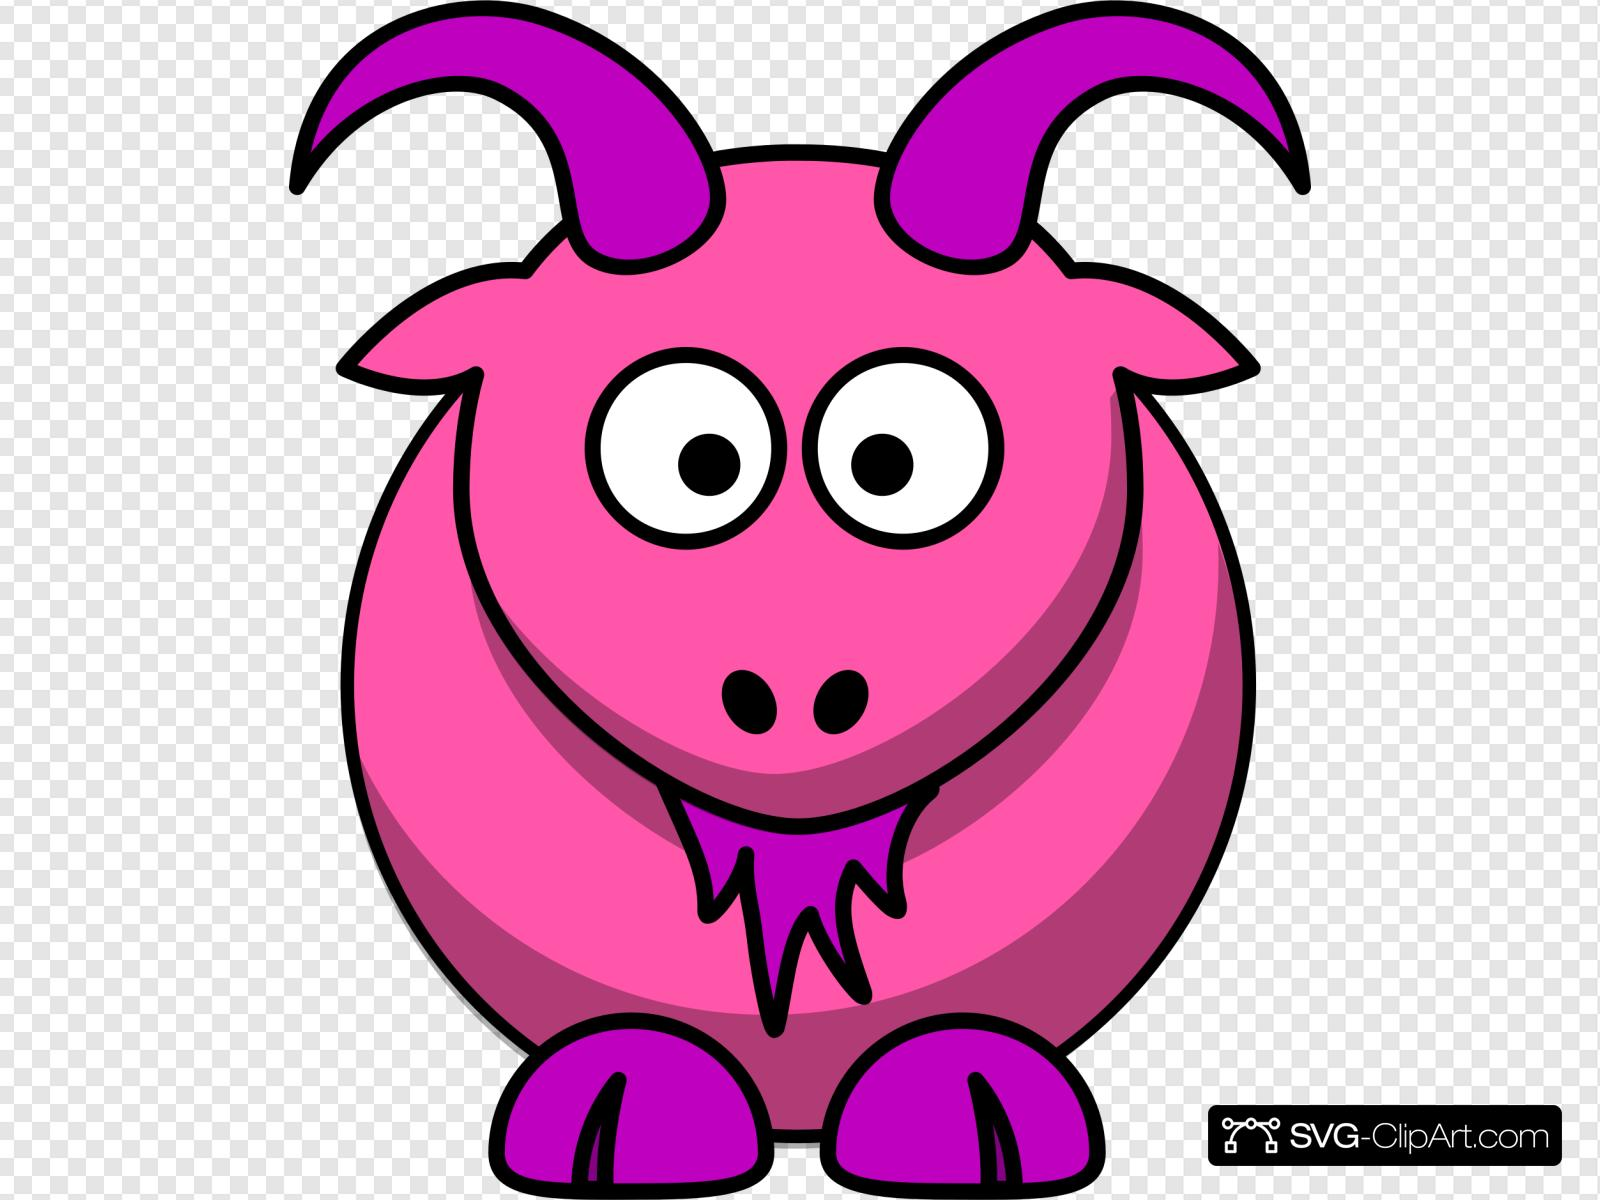 Clip art icon and. Goat clipart pink